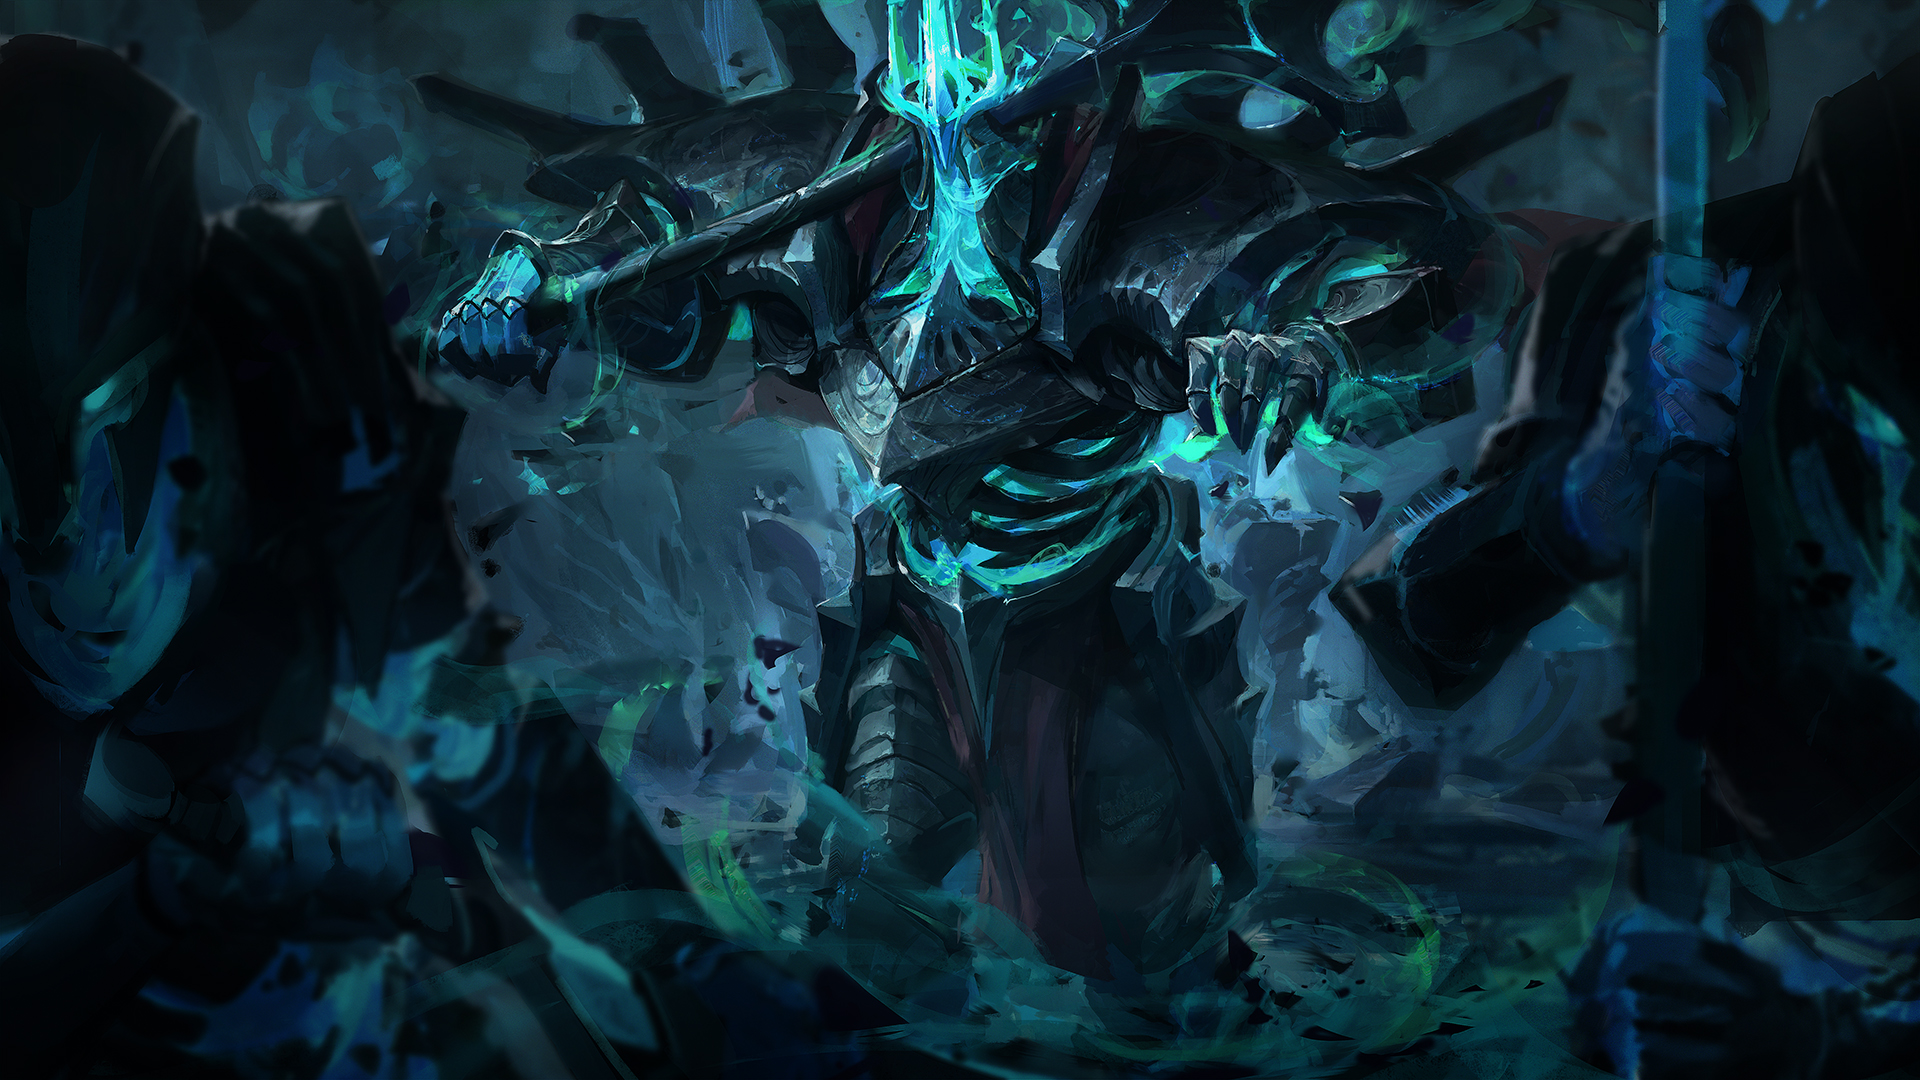 Mordekaiser The Final Reign